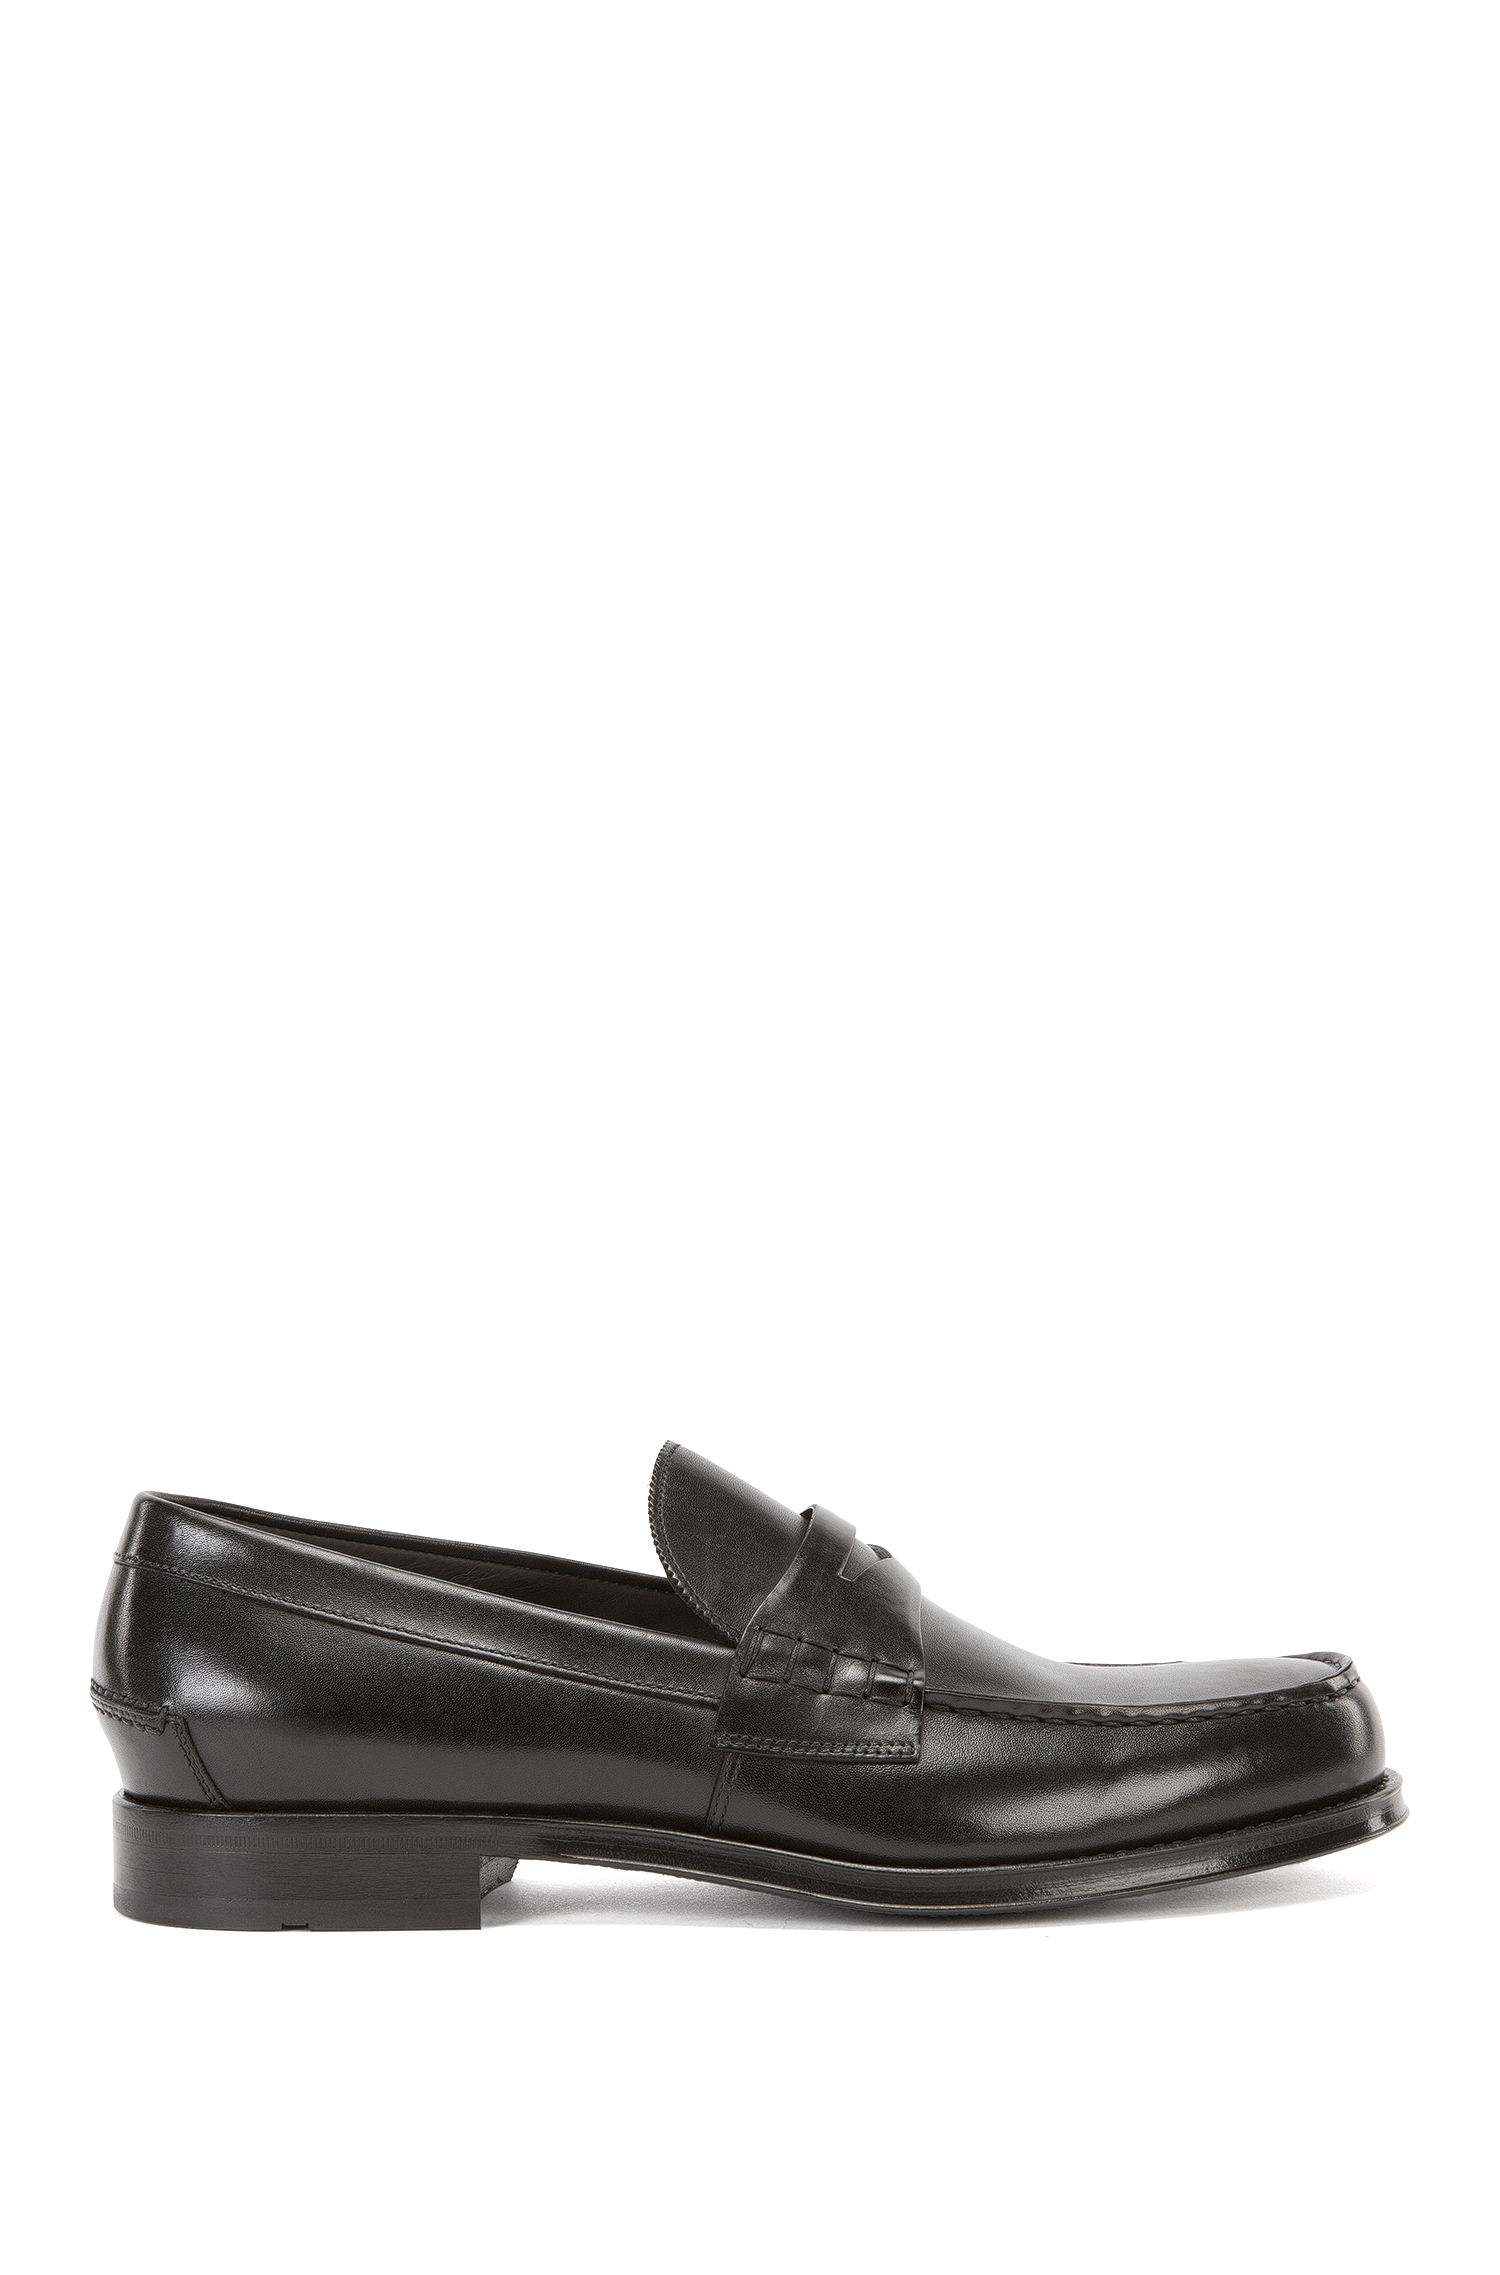 Leather loafers with moccasin detail